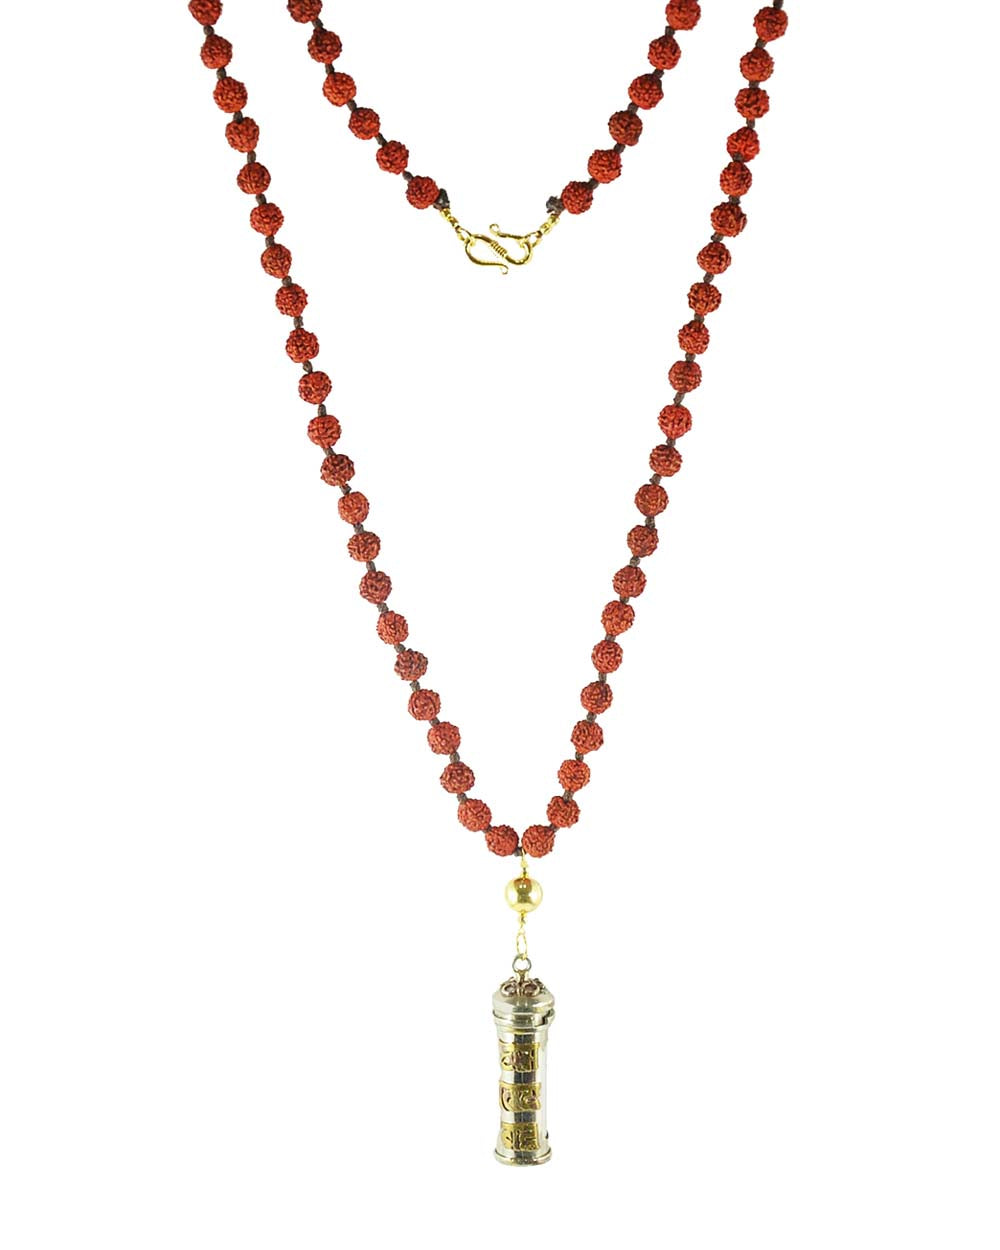 Buddhist Mantra Prayer Box and 108 Rudraksha Beads Mala